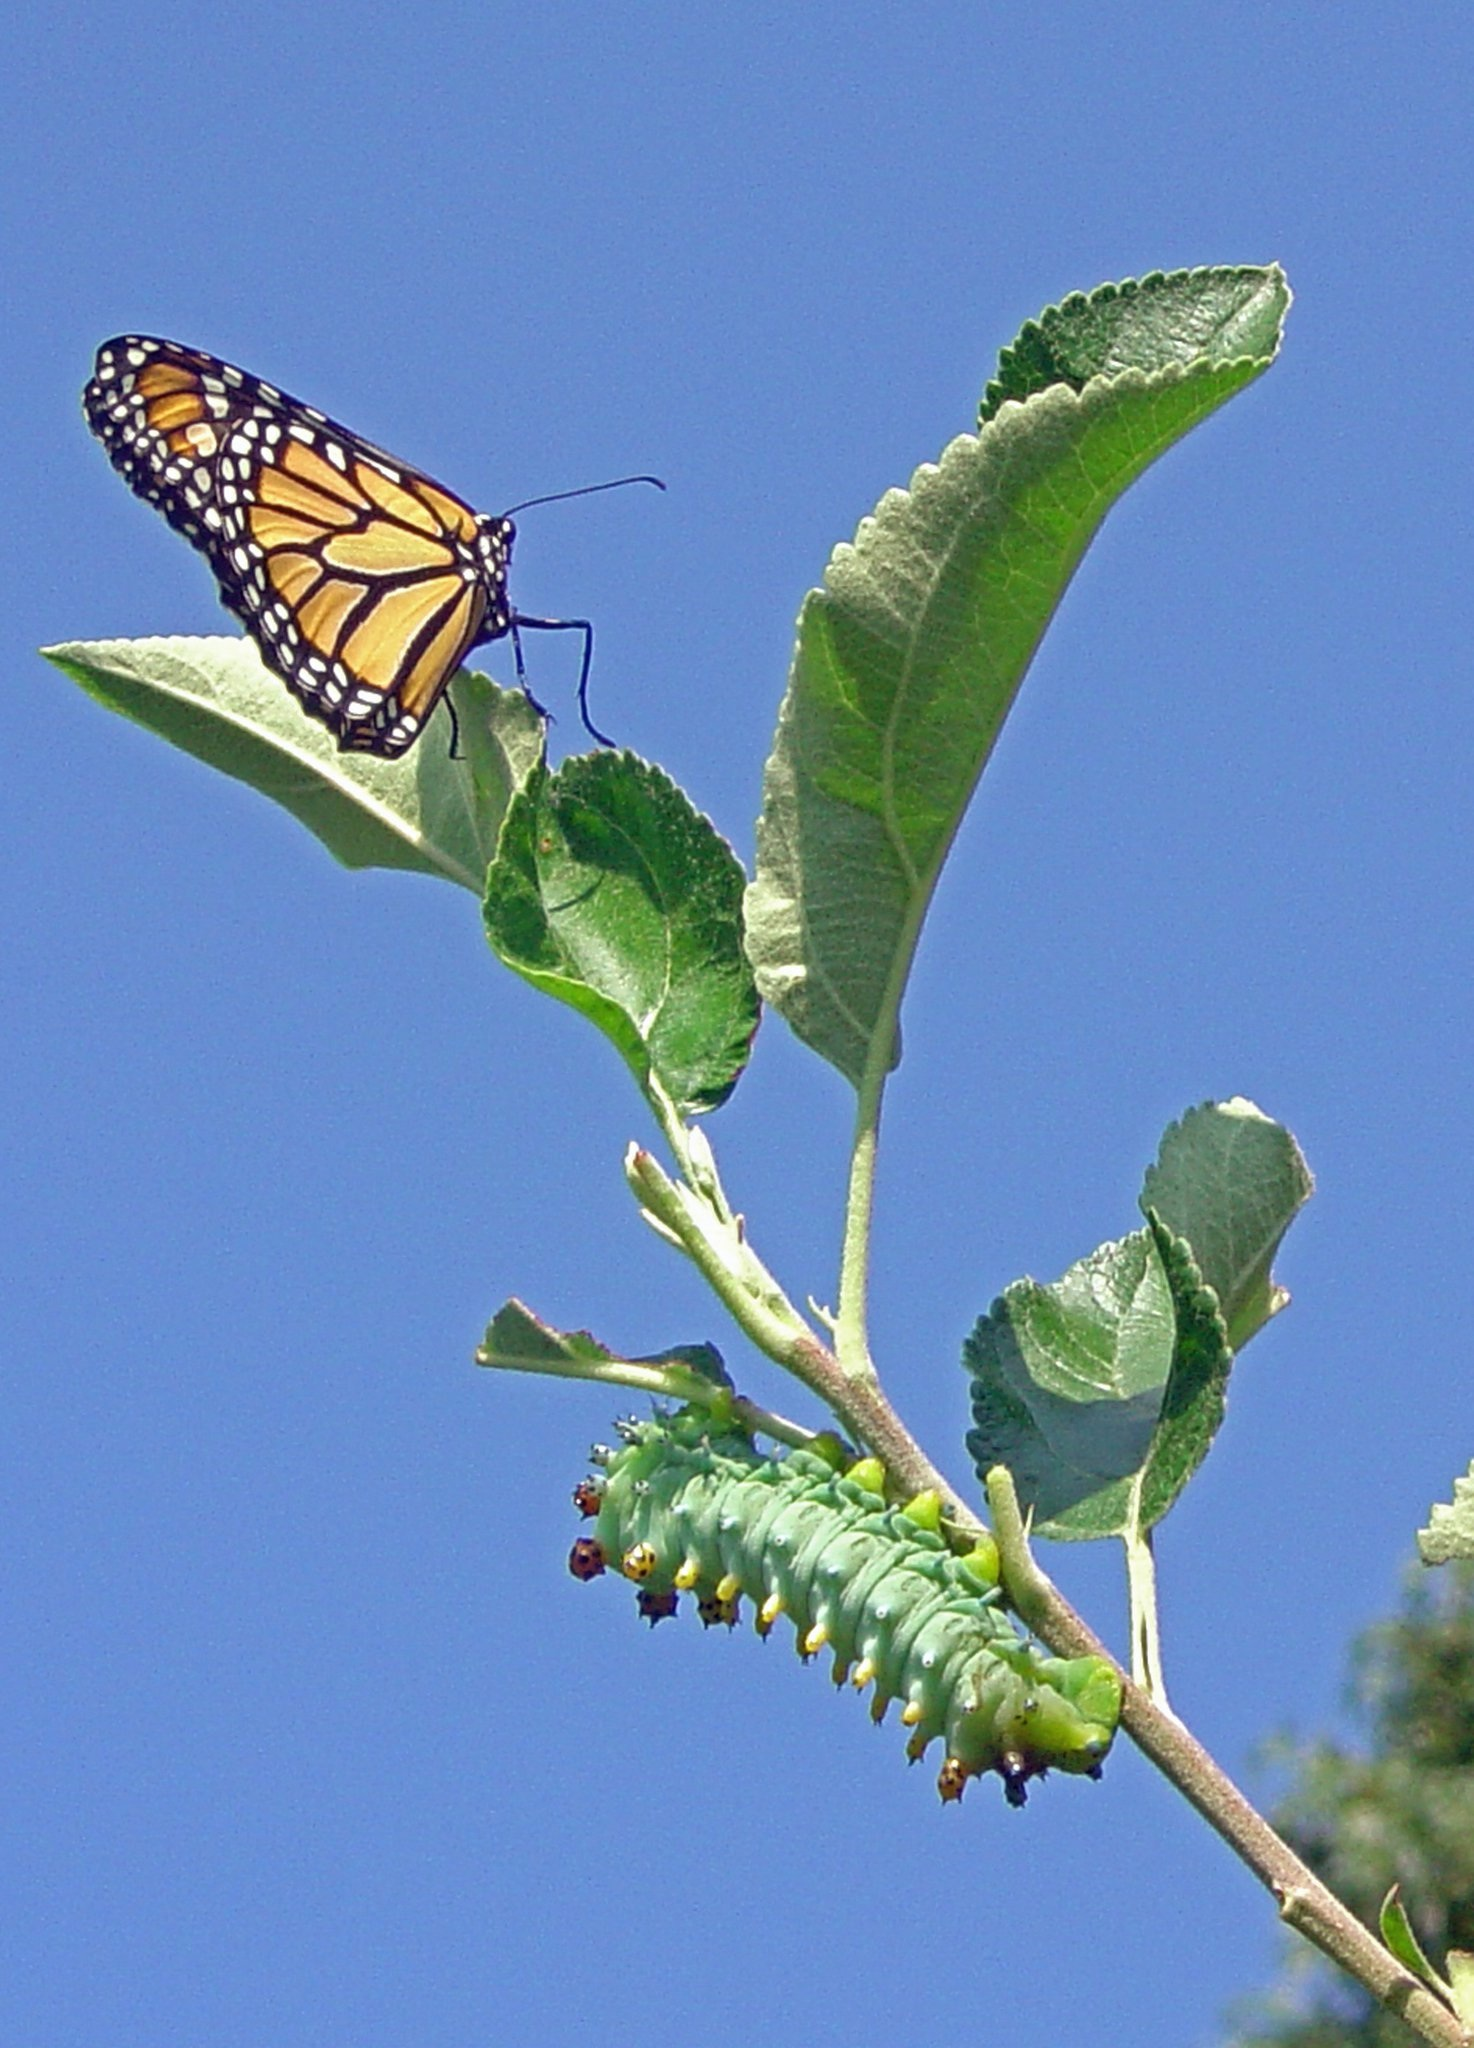 Monarch butterfly and Cecropia moth caterpillar share an apple tree stem